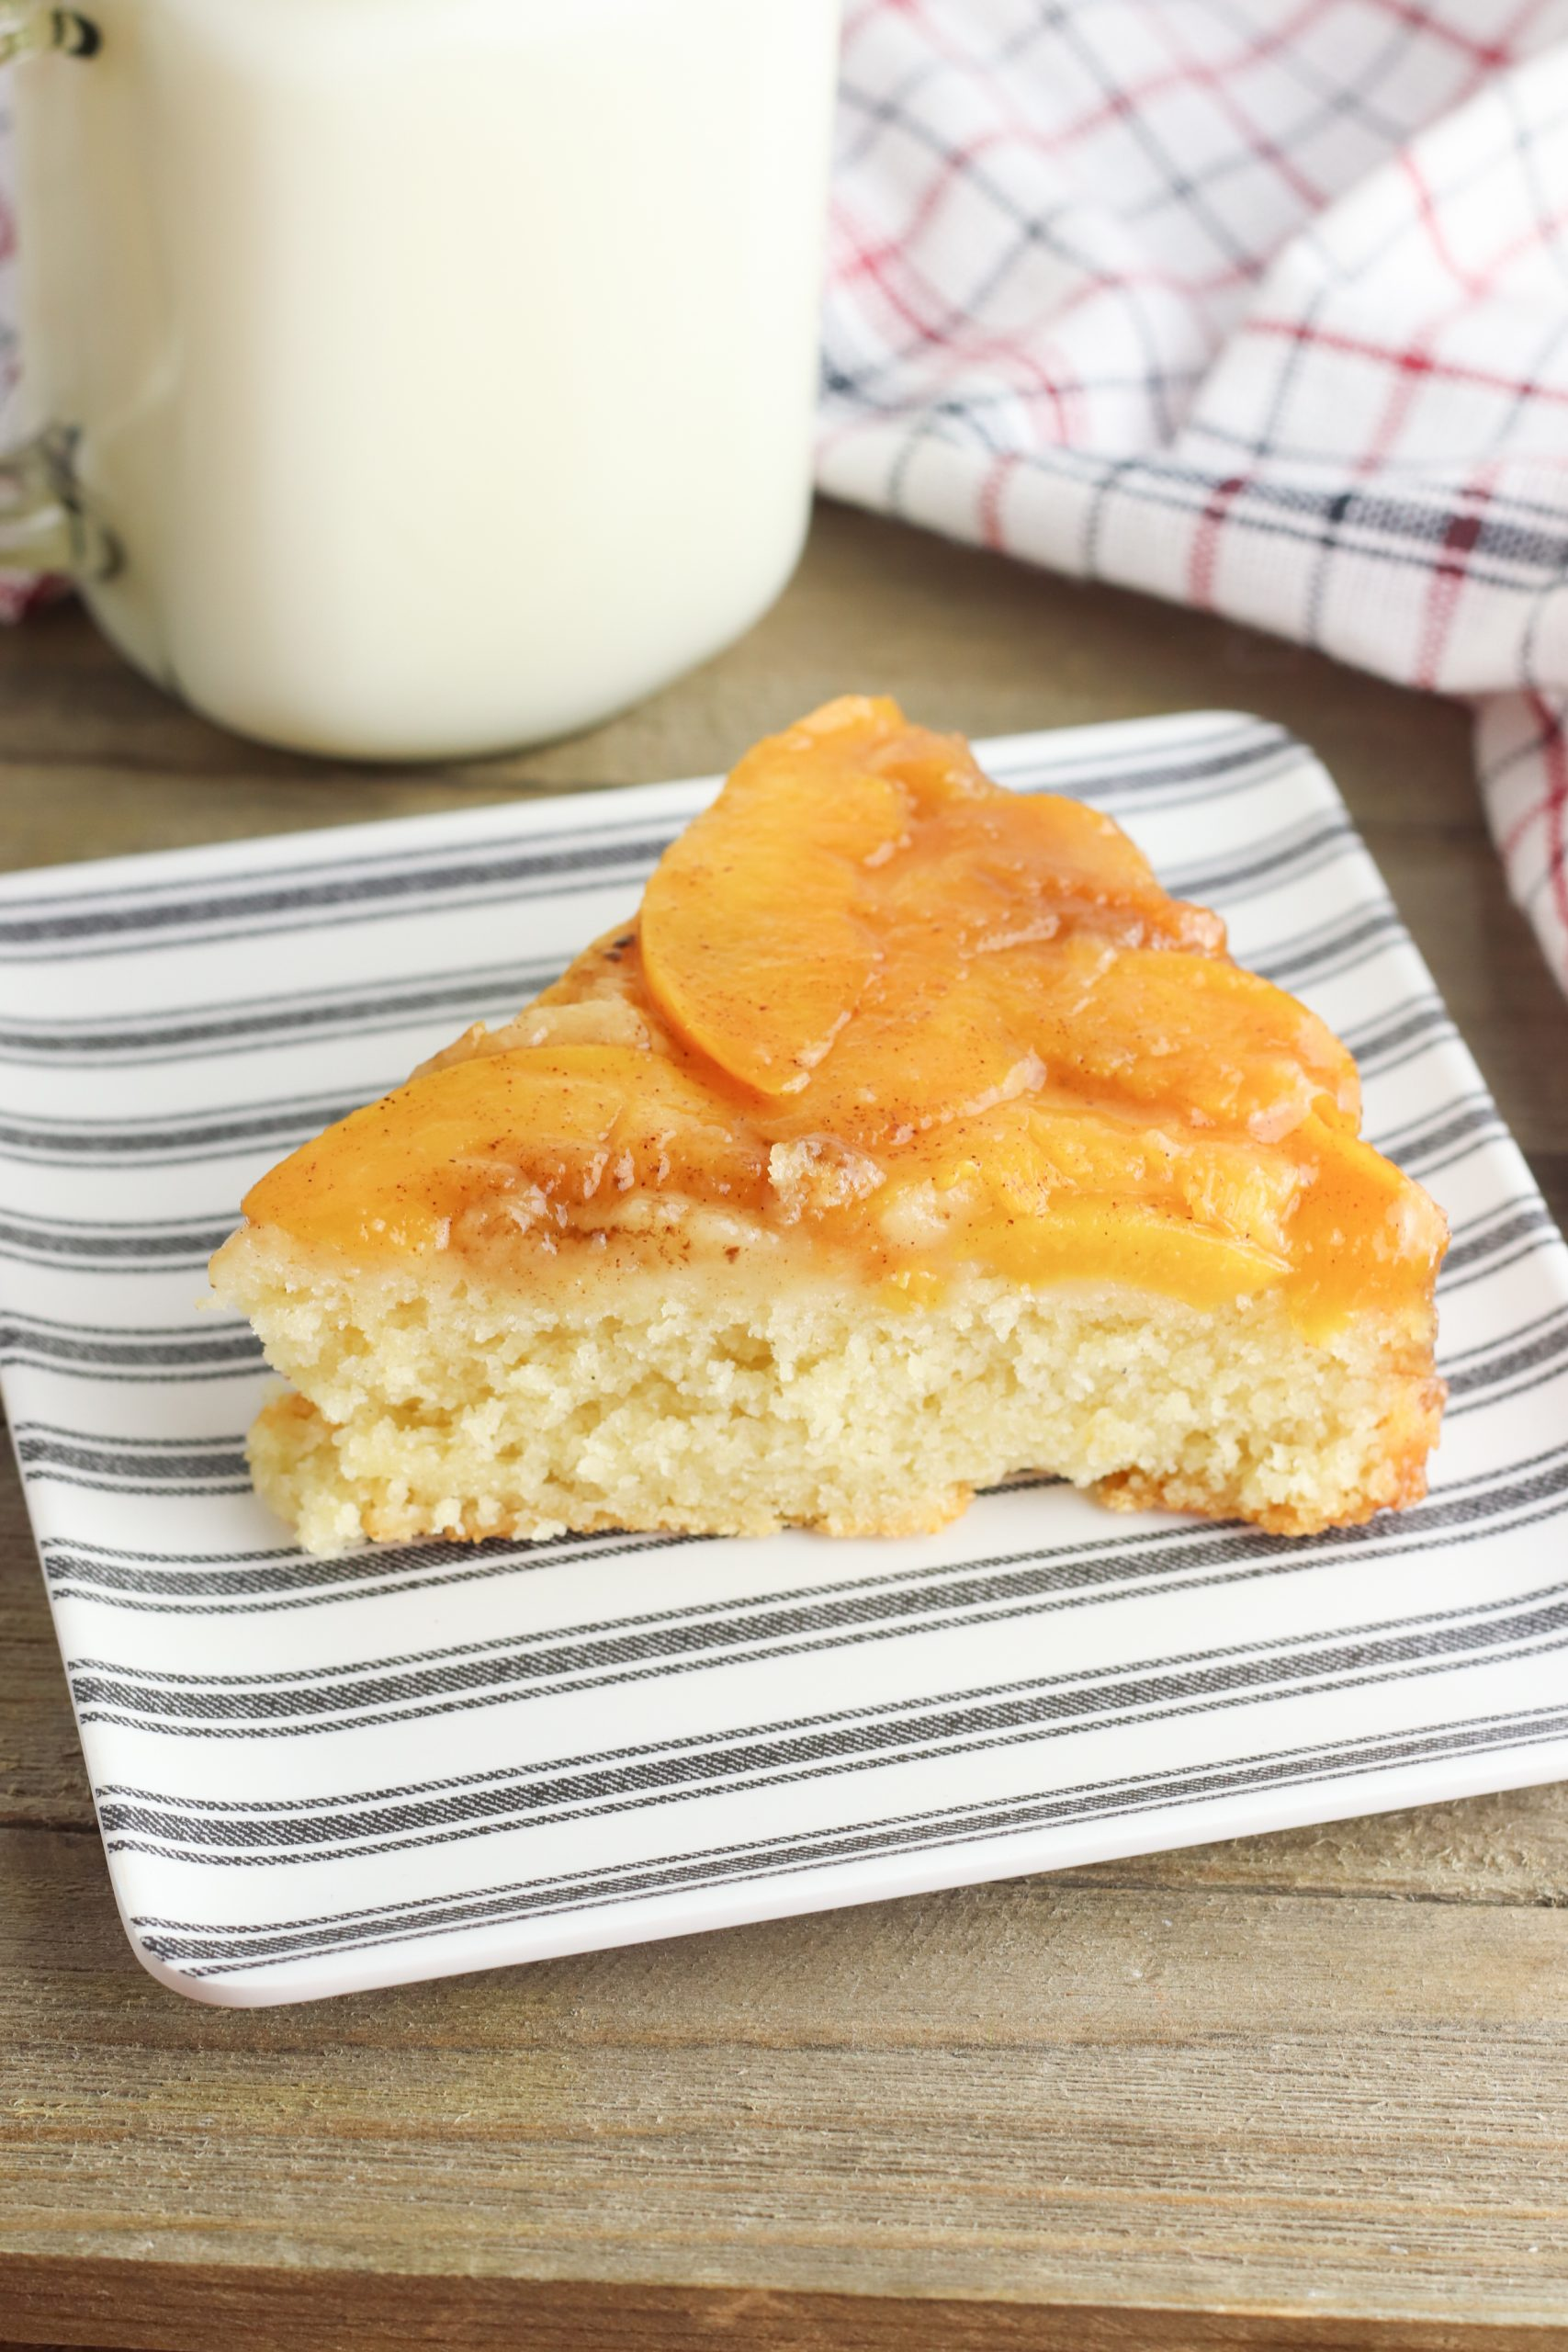 Upside Down Peach Cake Recipe being served for dessert on a plate with milk.